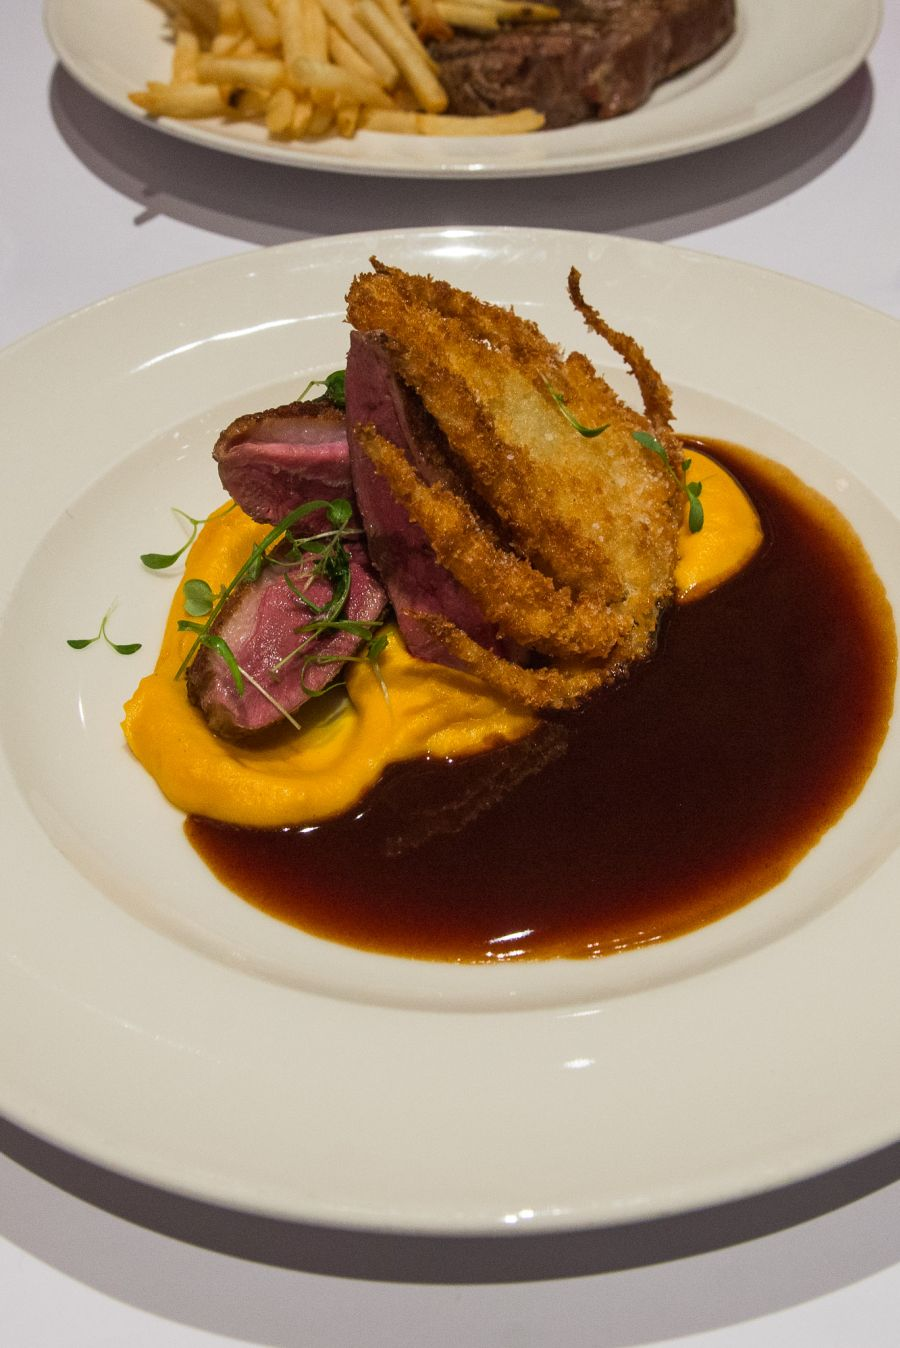 The Masterchef Australia dish: Seared duck breast, pumpkin purée, fennel crisp, Madeira jus (AU$43)